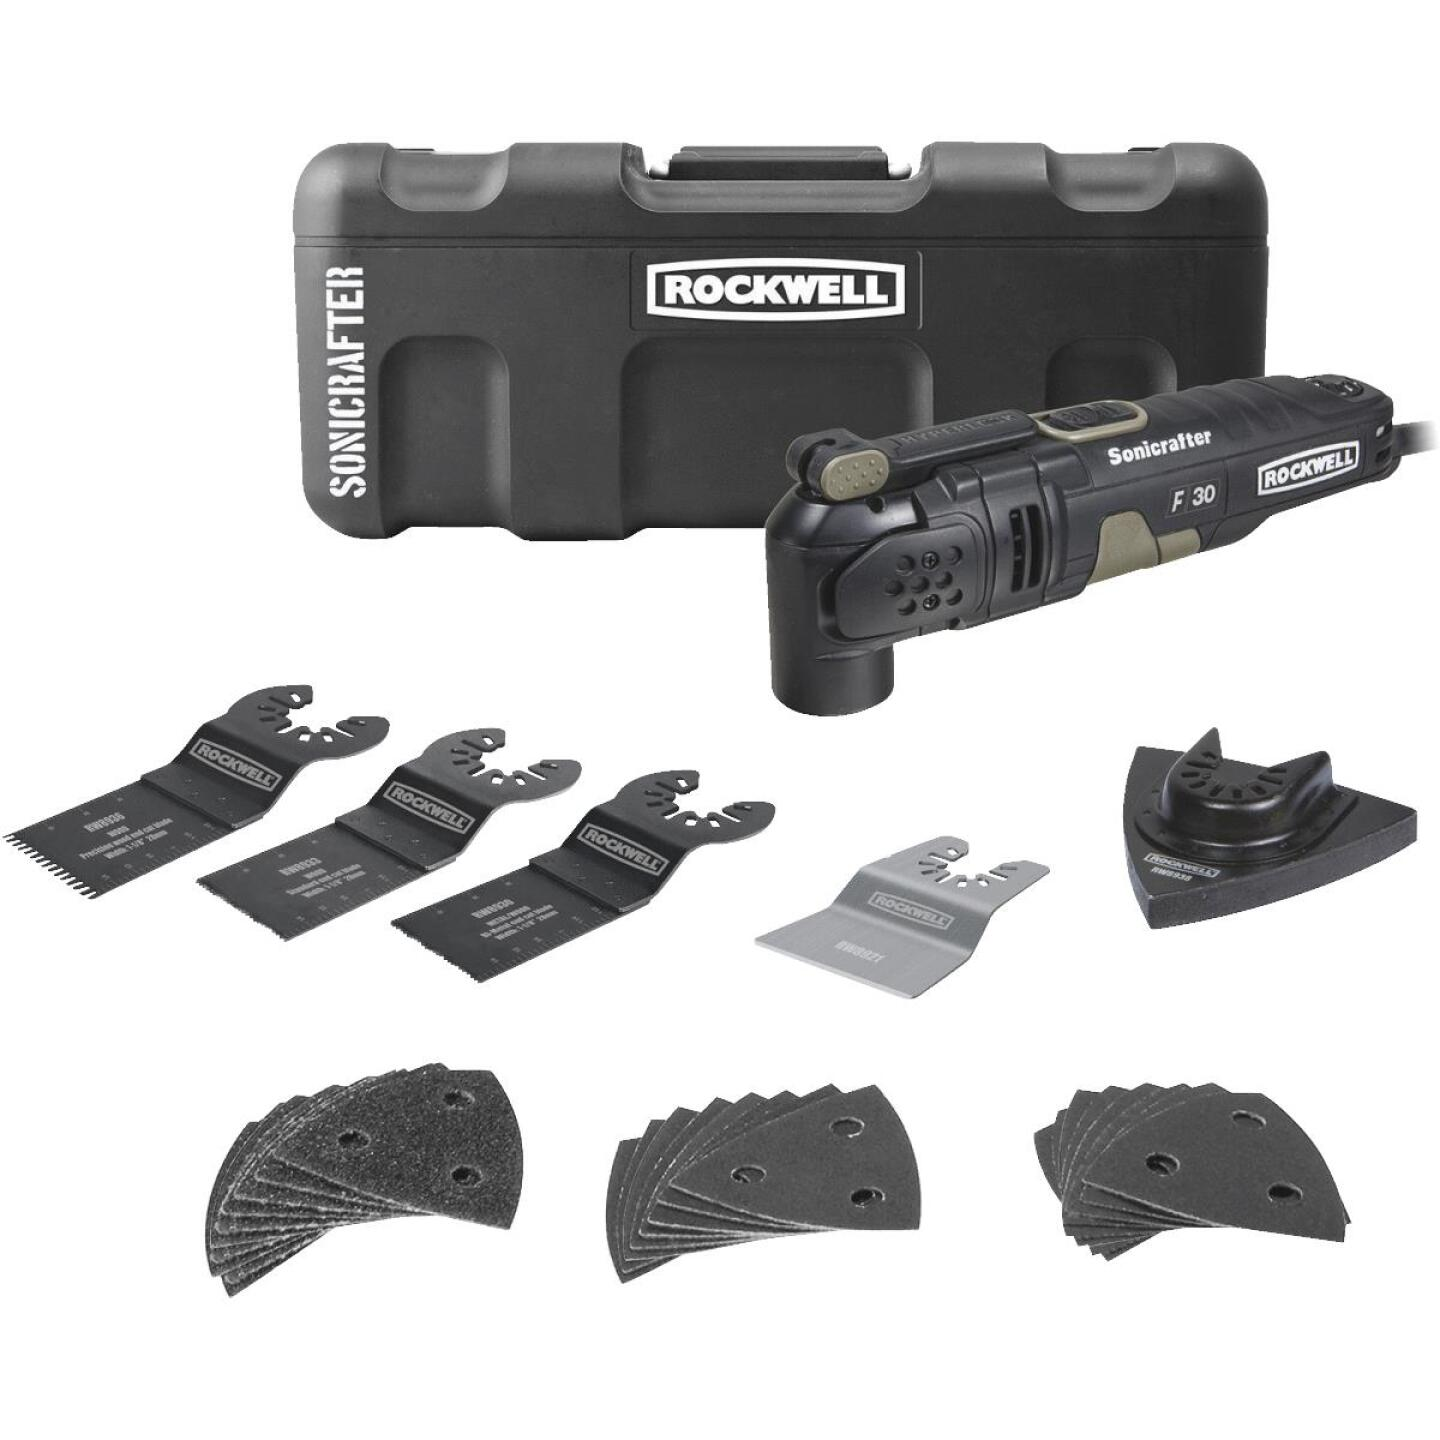 Rockwell Sonicrafter 3.5-Amp Oscillating Tool Kit Image 1